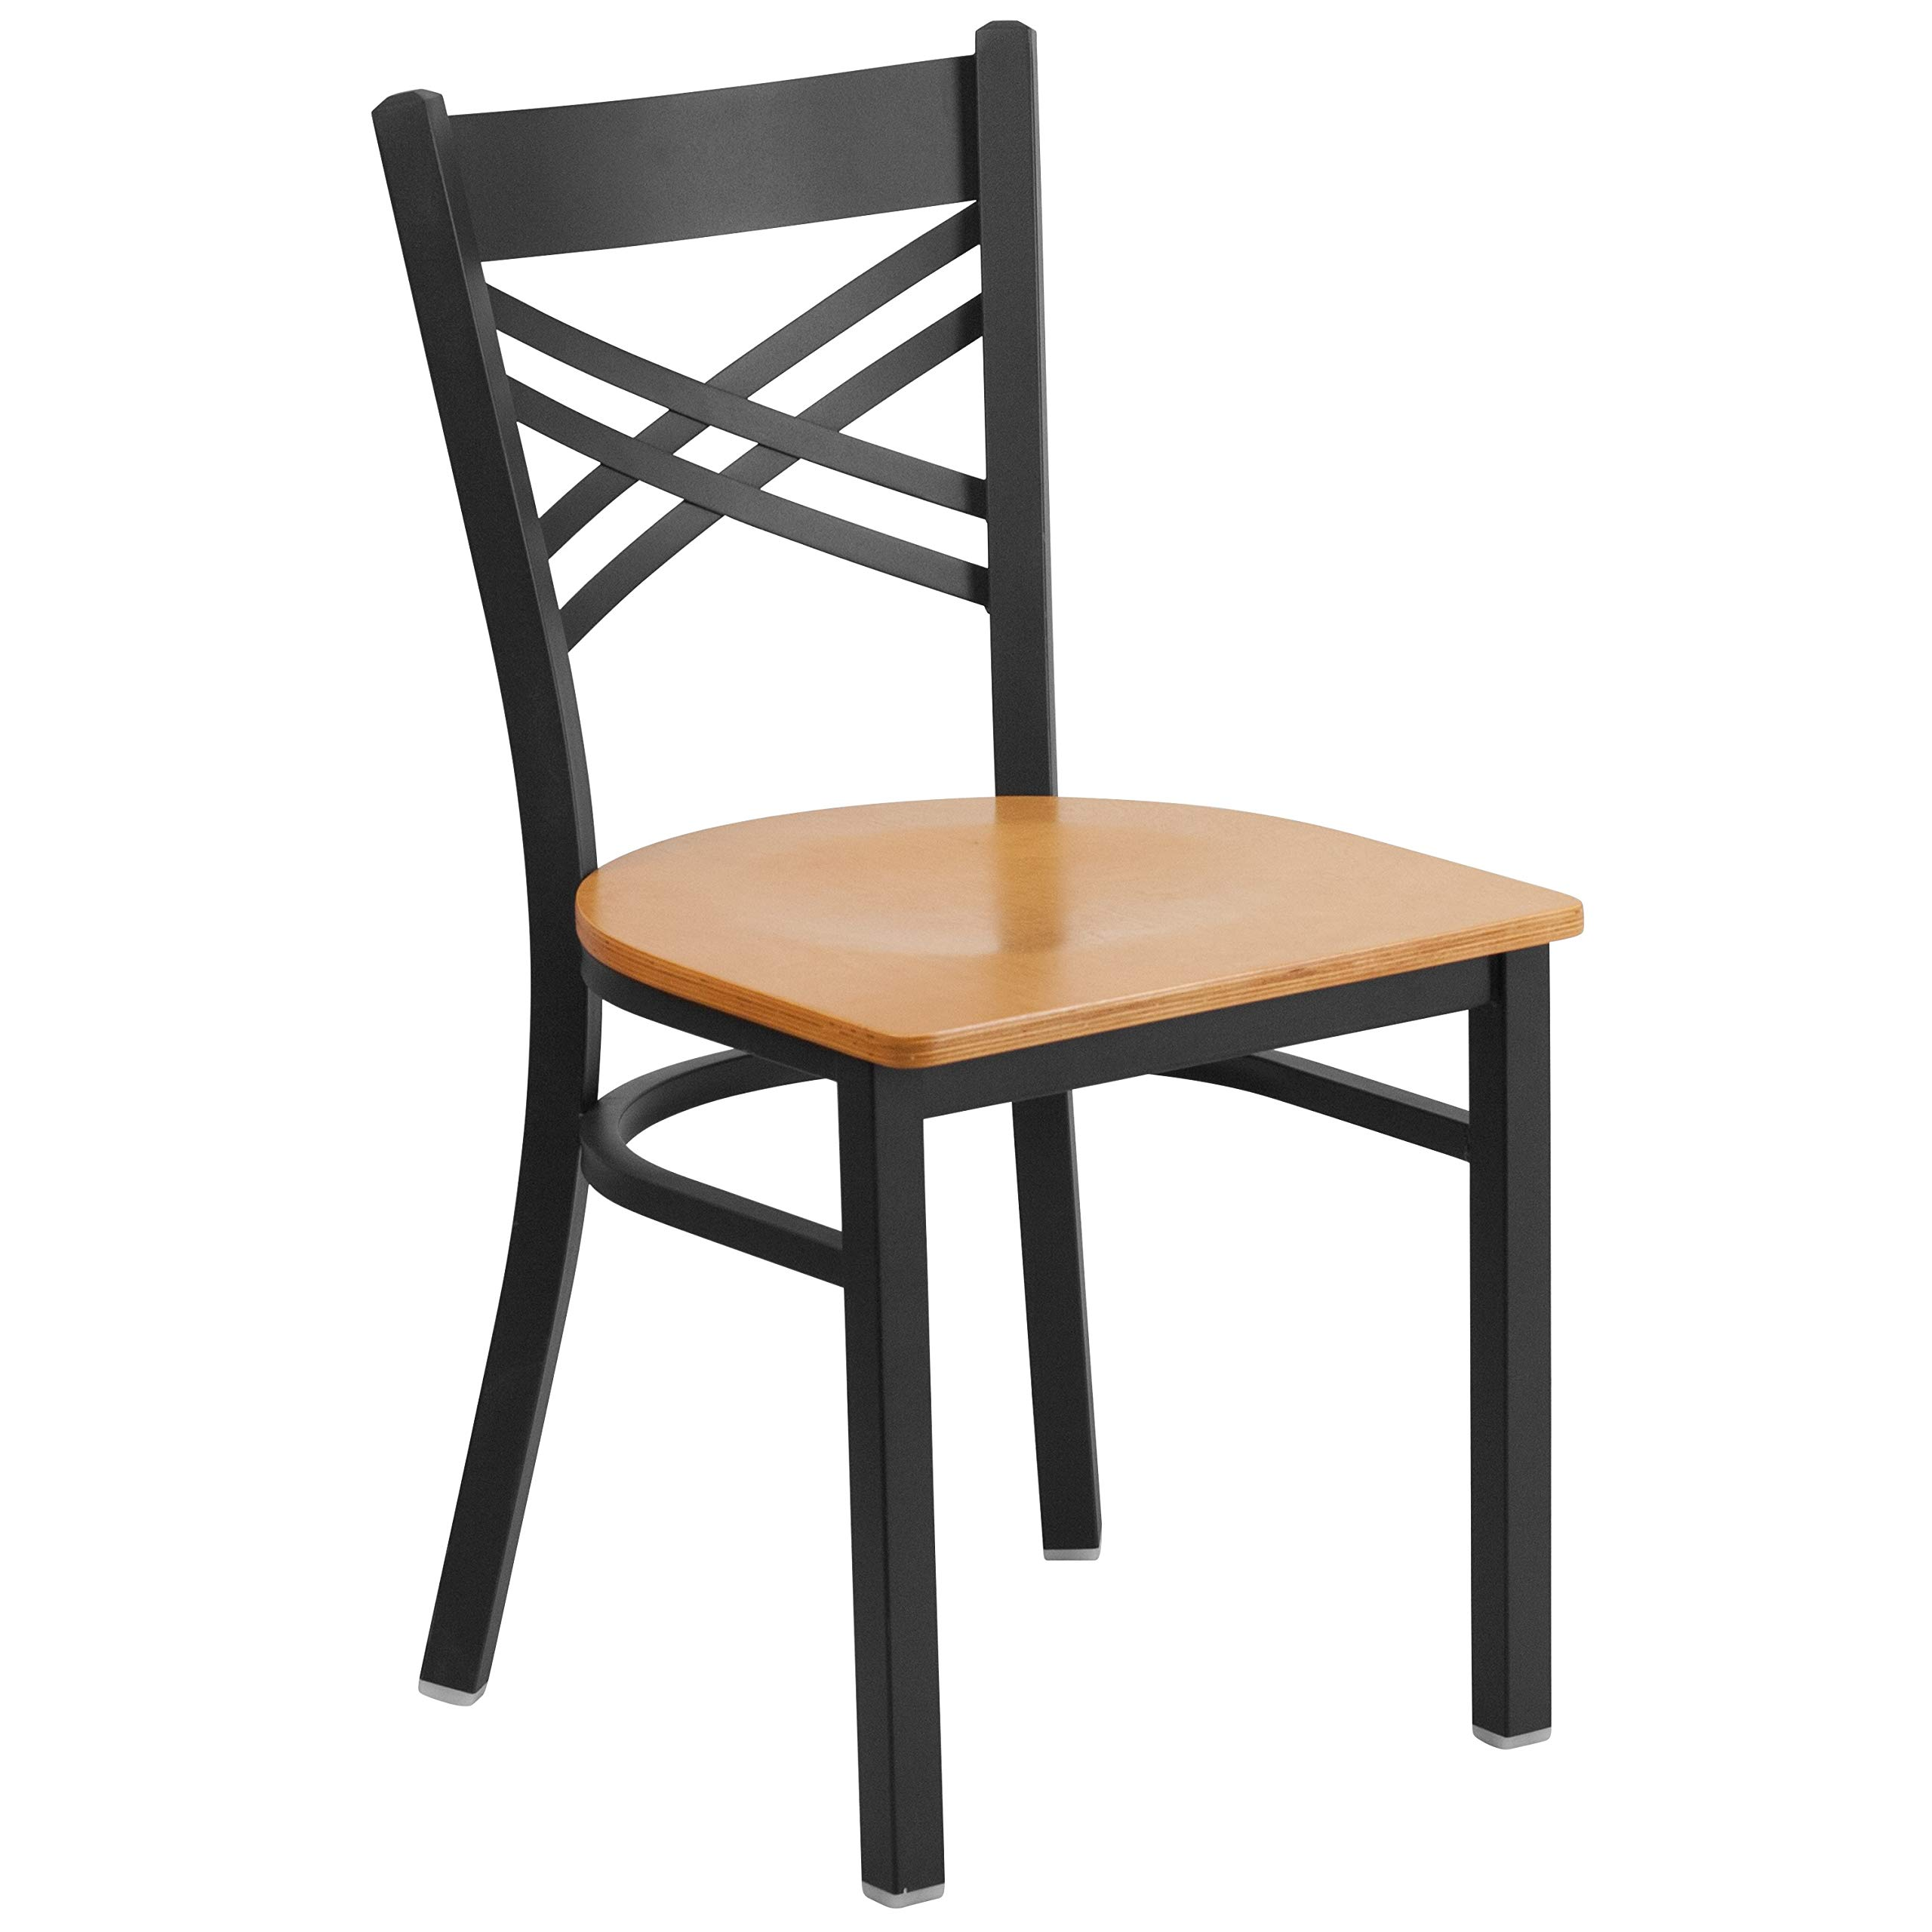 MFO Princeton Collection Black ''X'' Back Metal Restaurant Chair - Natural Wood Seat by My Friendly Office